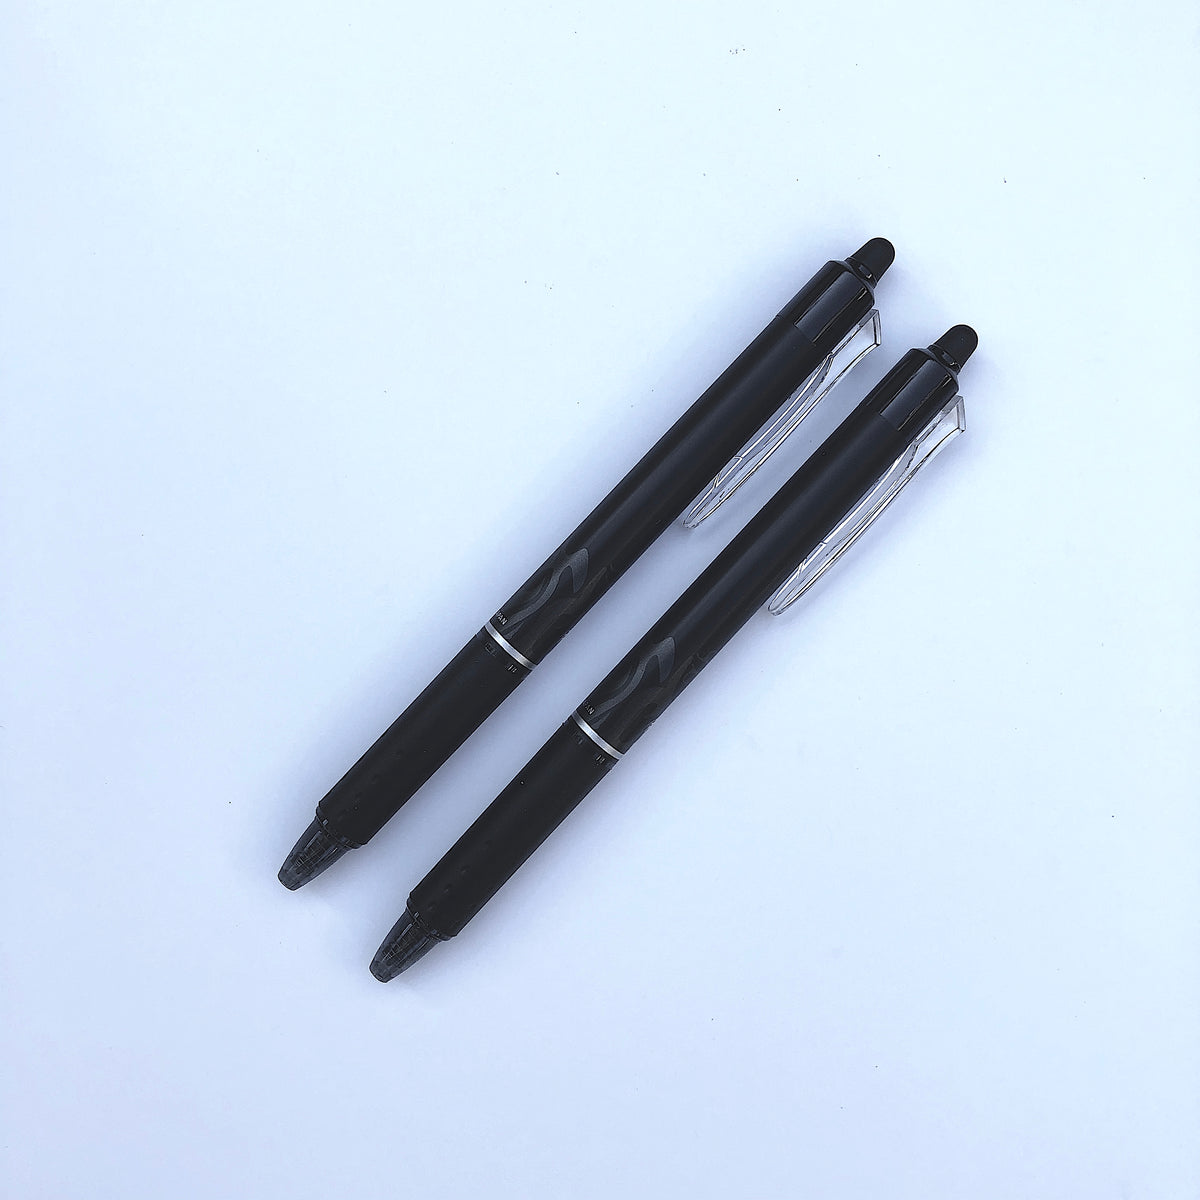 2 Erasable Pens